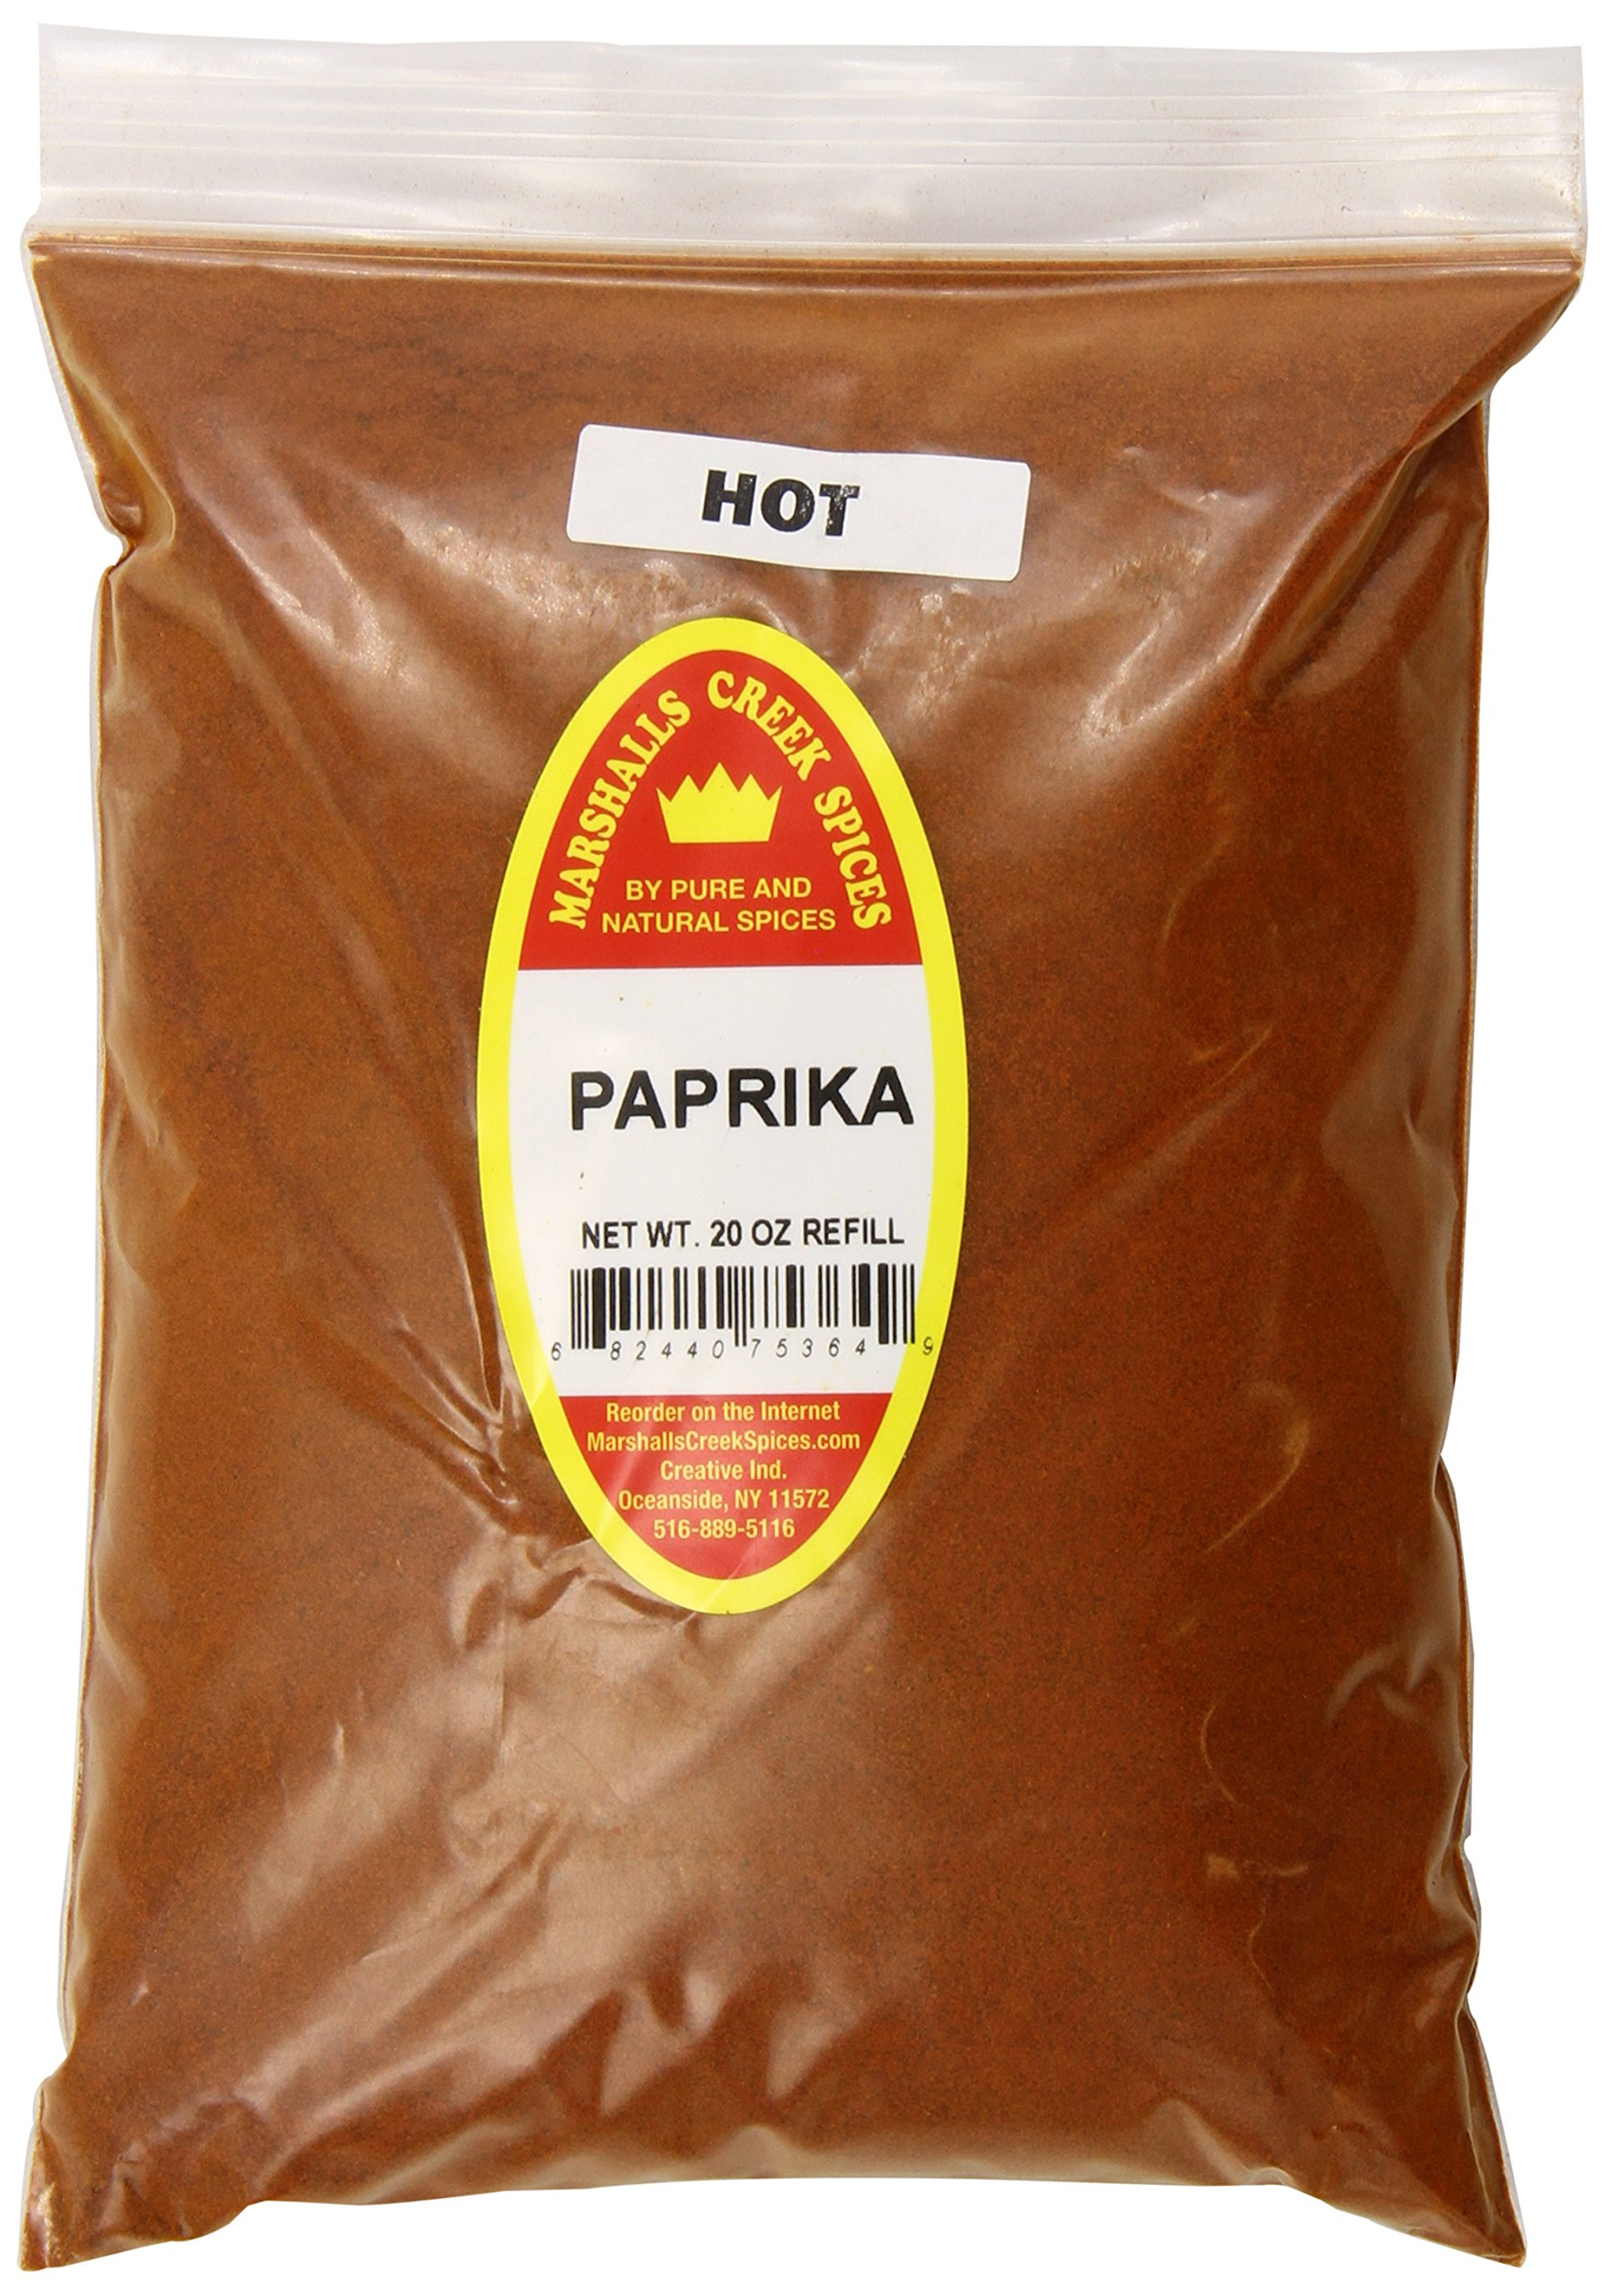 Marshalls Creek Spices X-Large Refill Paprika, Hot, 20 Ounce by Marshall's Creek Spices (Image #1)